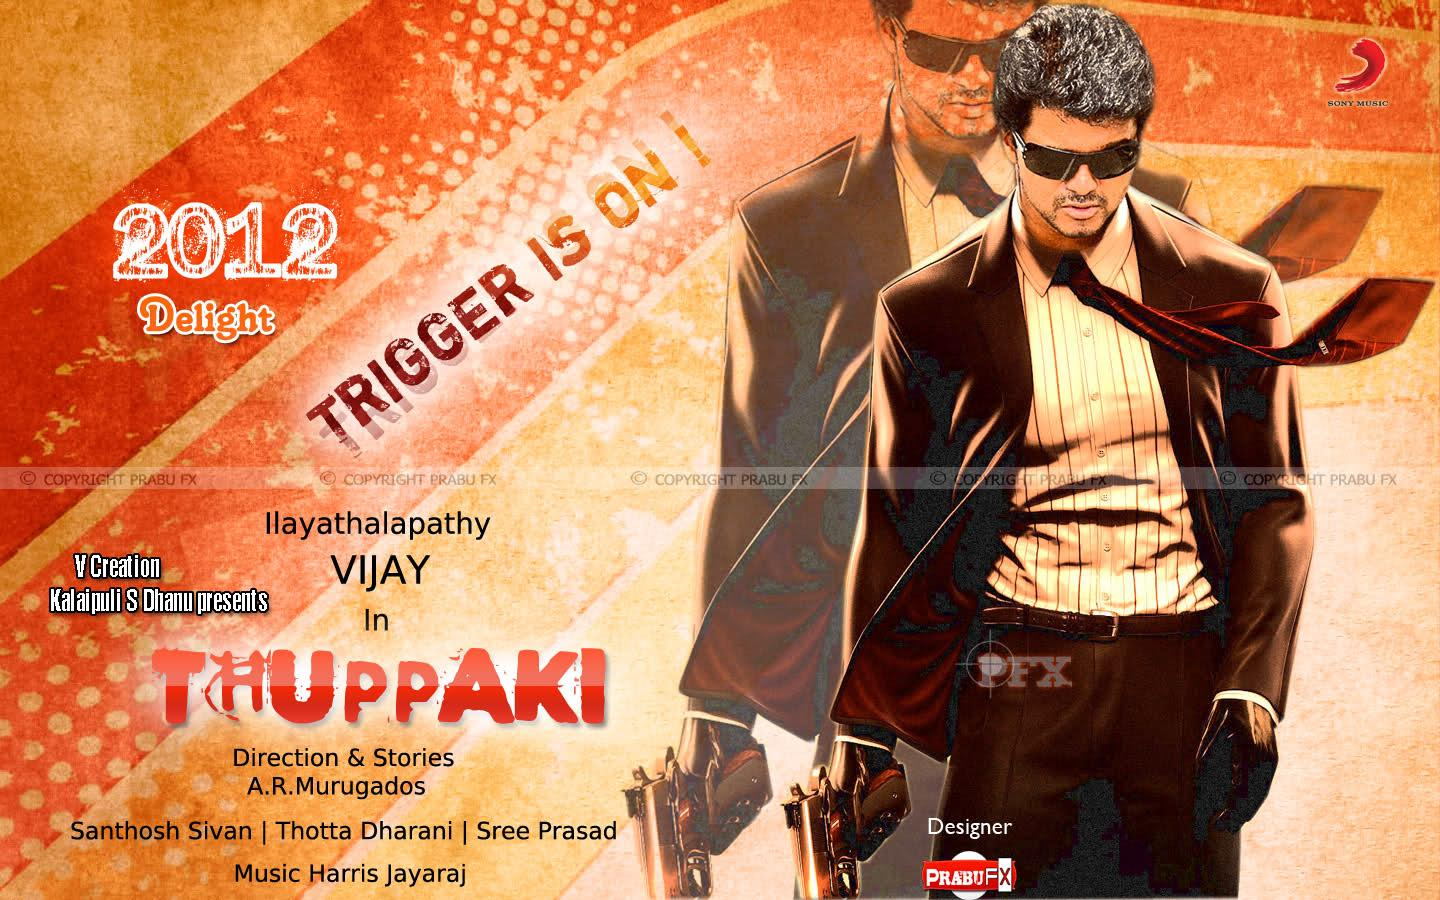 Thuppakki tamil movies 2012 free download / Watch dogs ps3 1